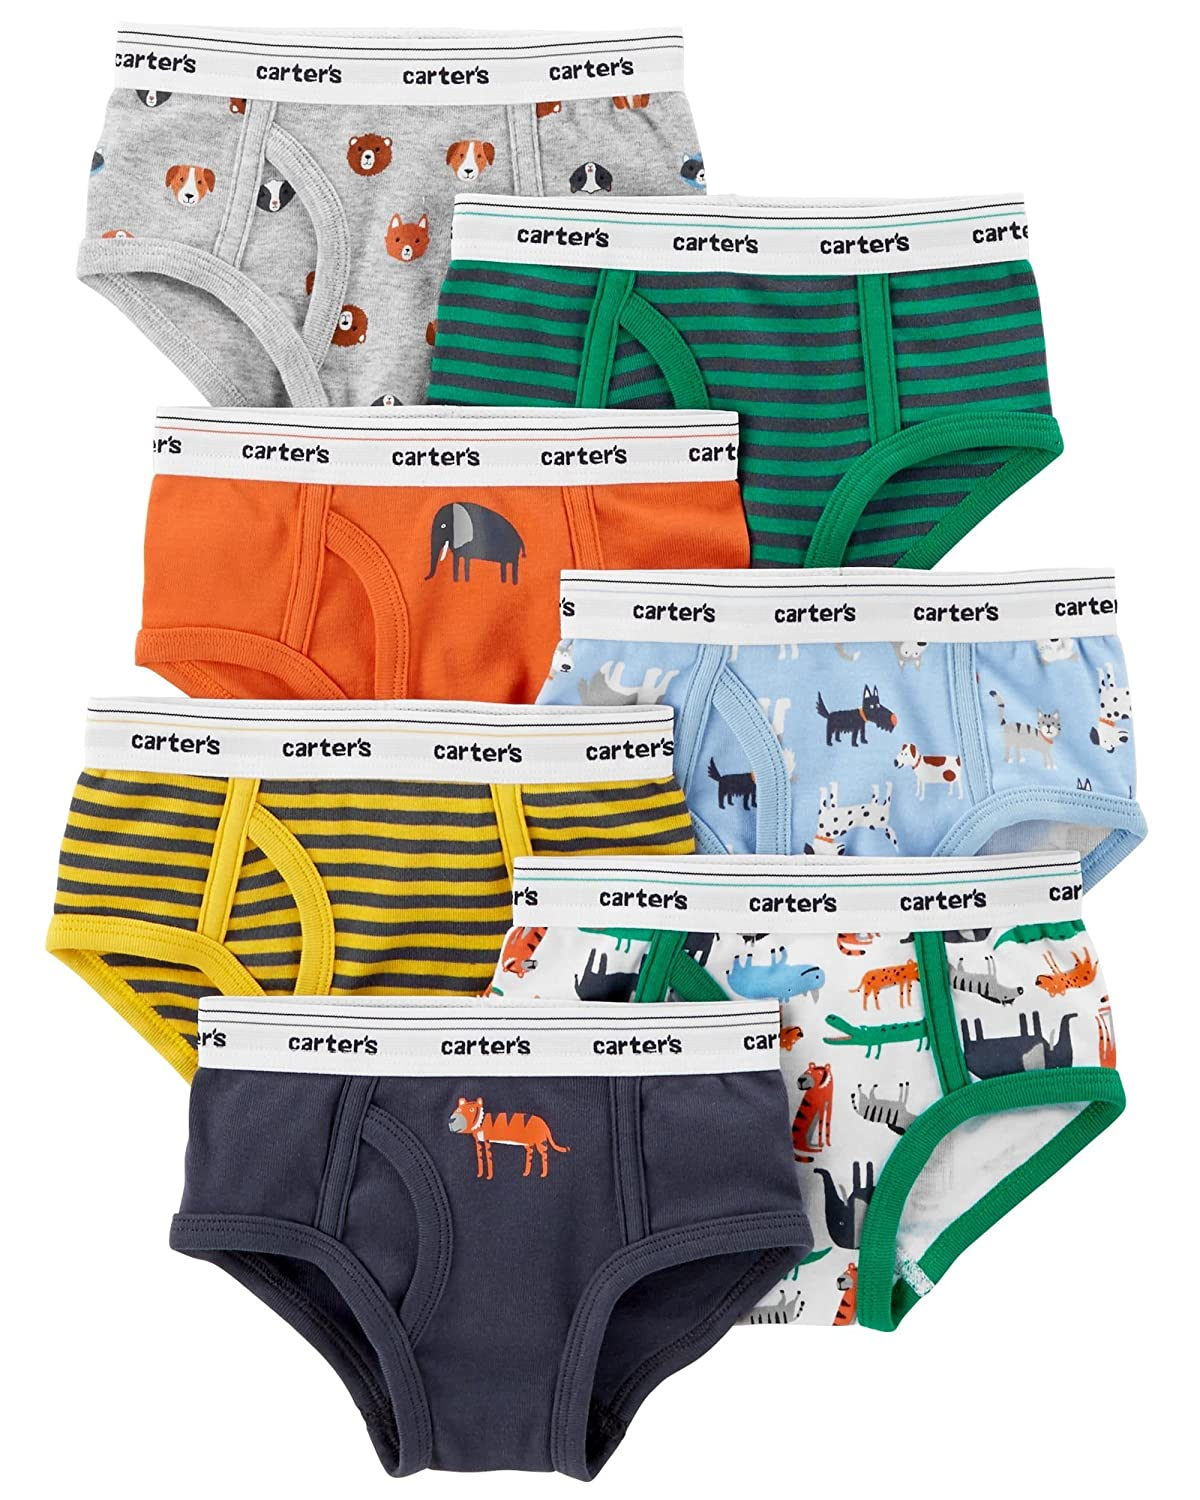 Carter's Little Boys' 7-pack Cotton Briefs (Toddler/Kid) Carters D31G139